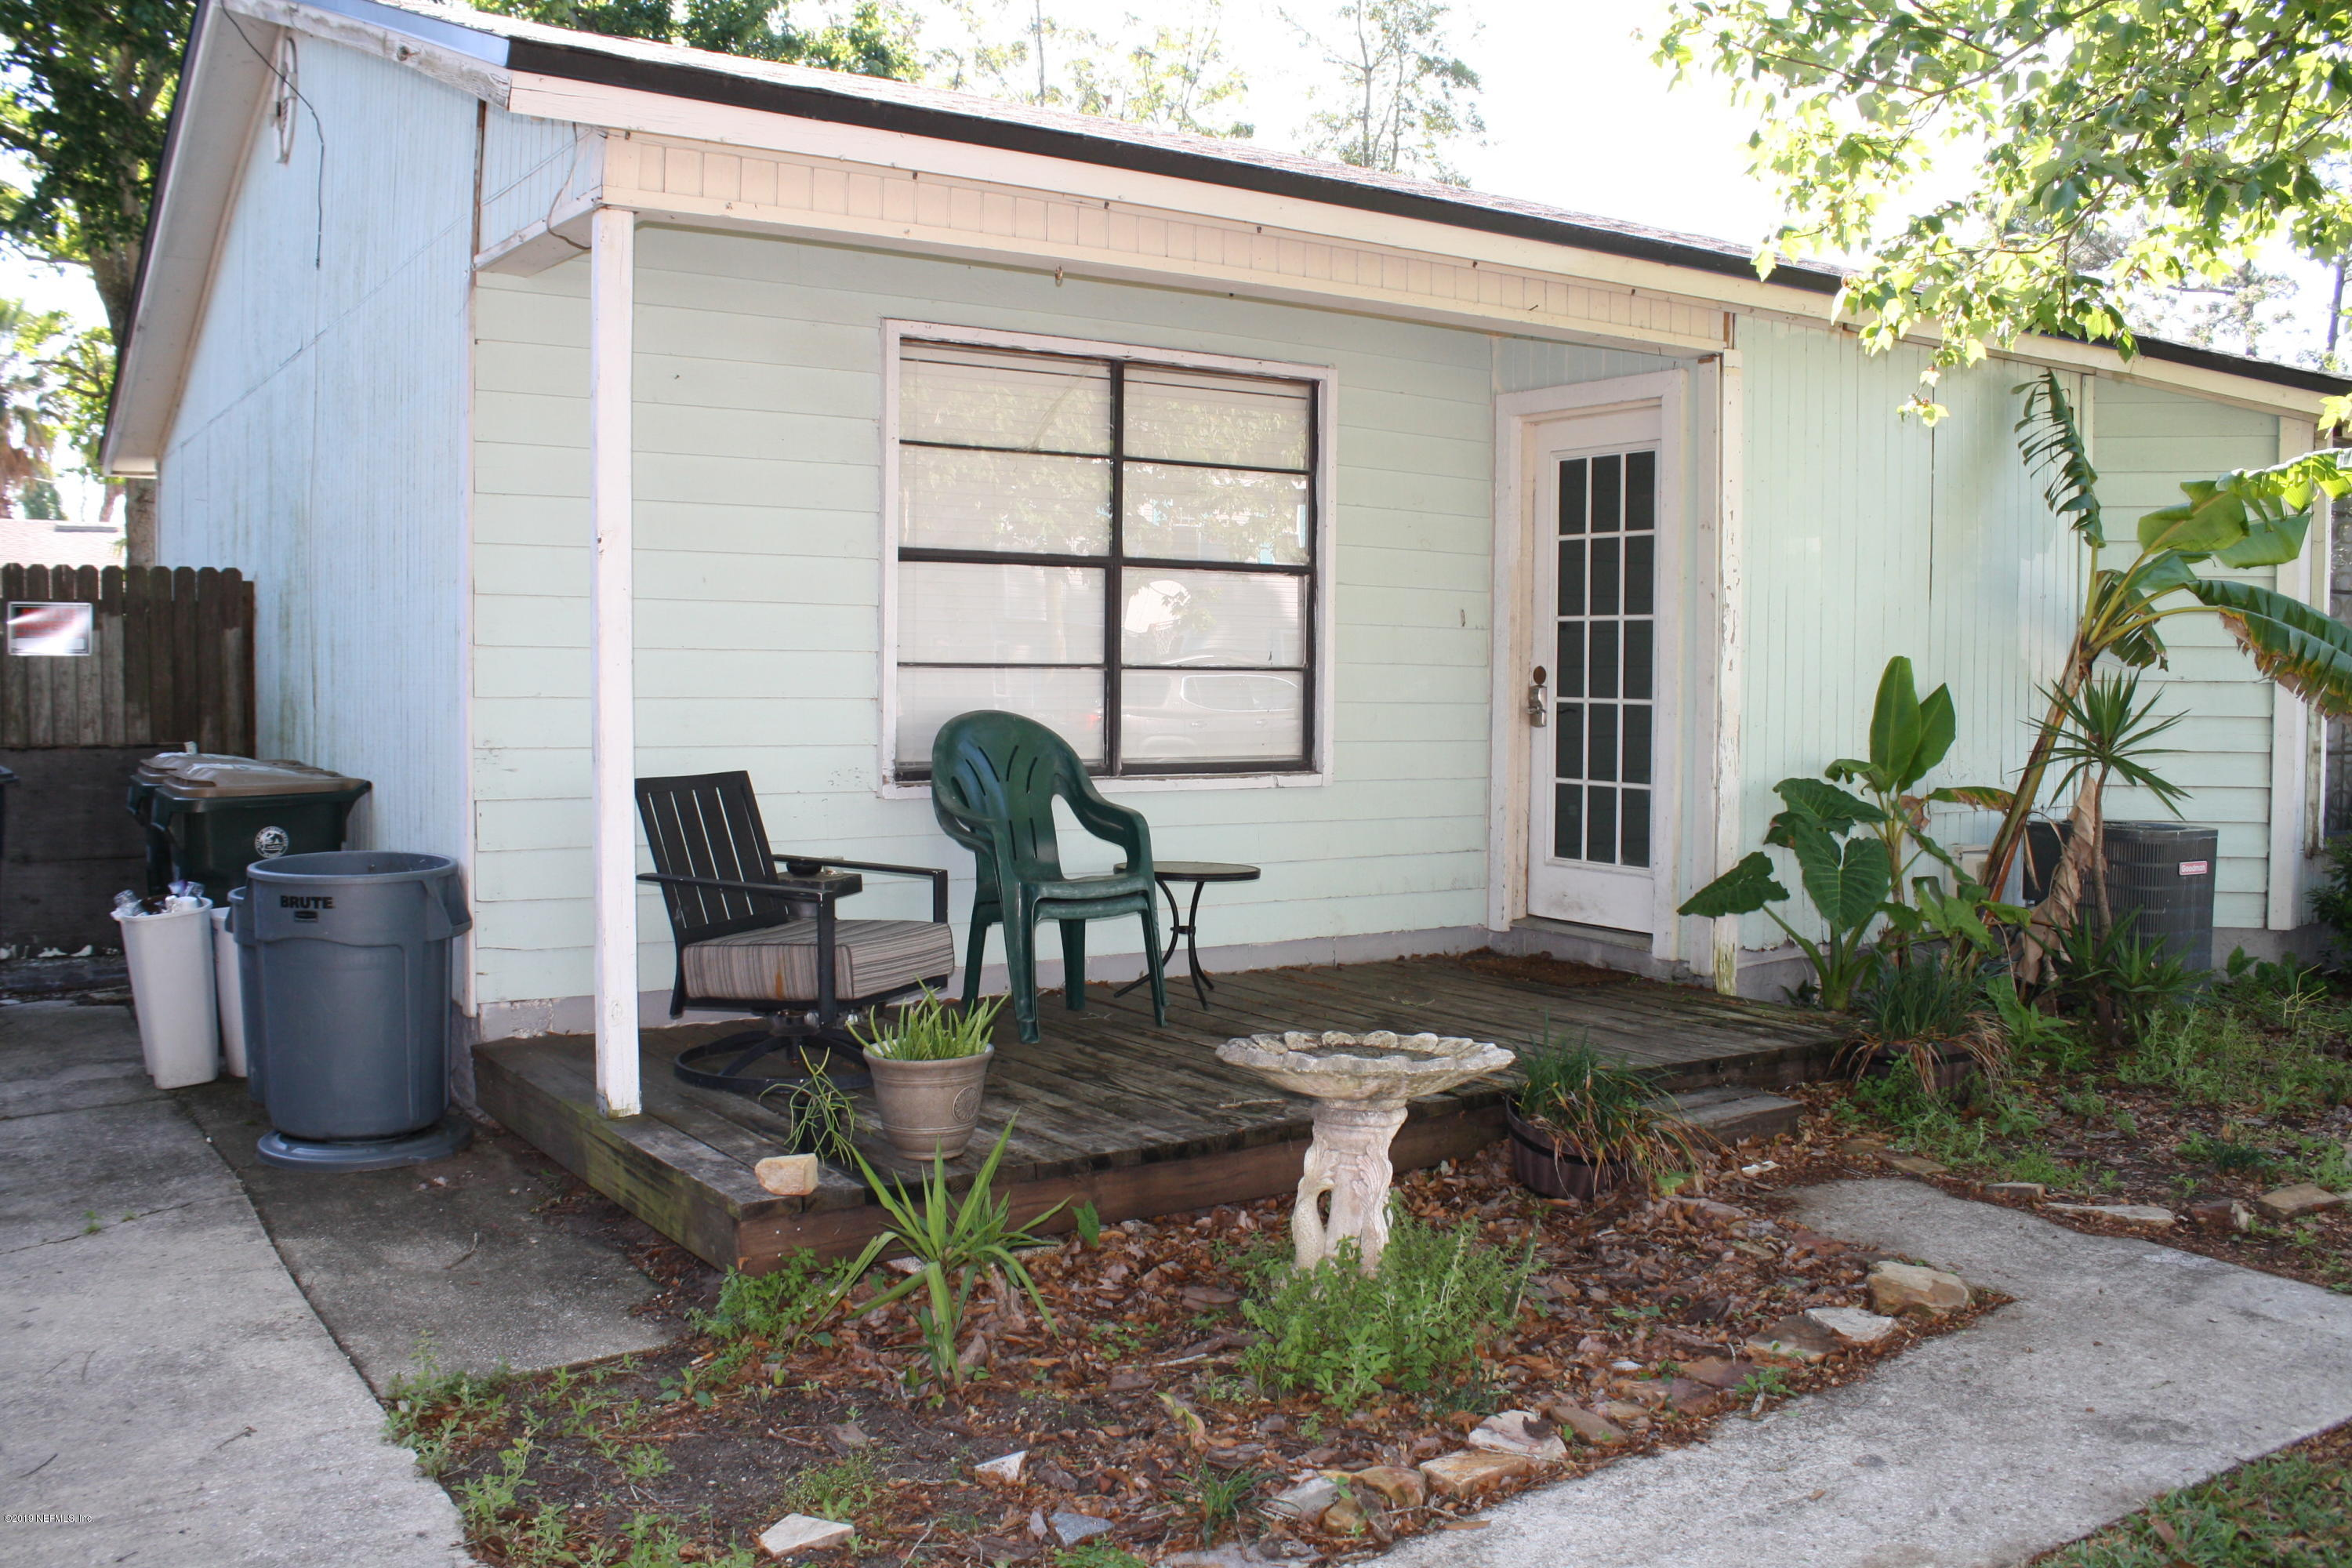 1365 VIOLET, ATLANTIC BEACH, FLORIDA 32233, 2 Bedrooms Bedrooms, ,1 BathroomBathrooms,Residential - townhome,For sale,VIOLET,988449